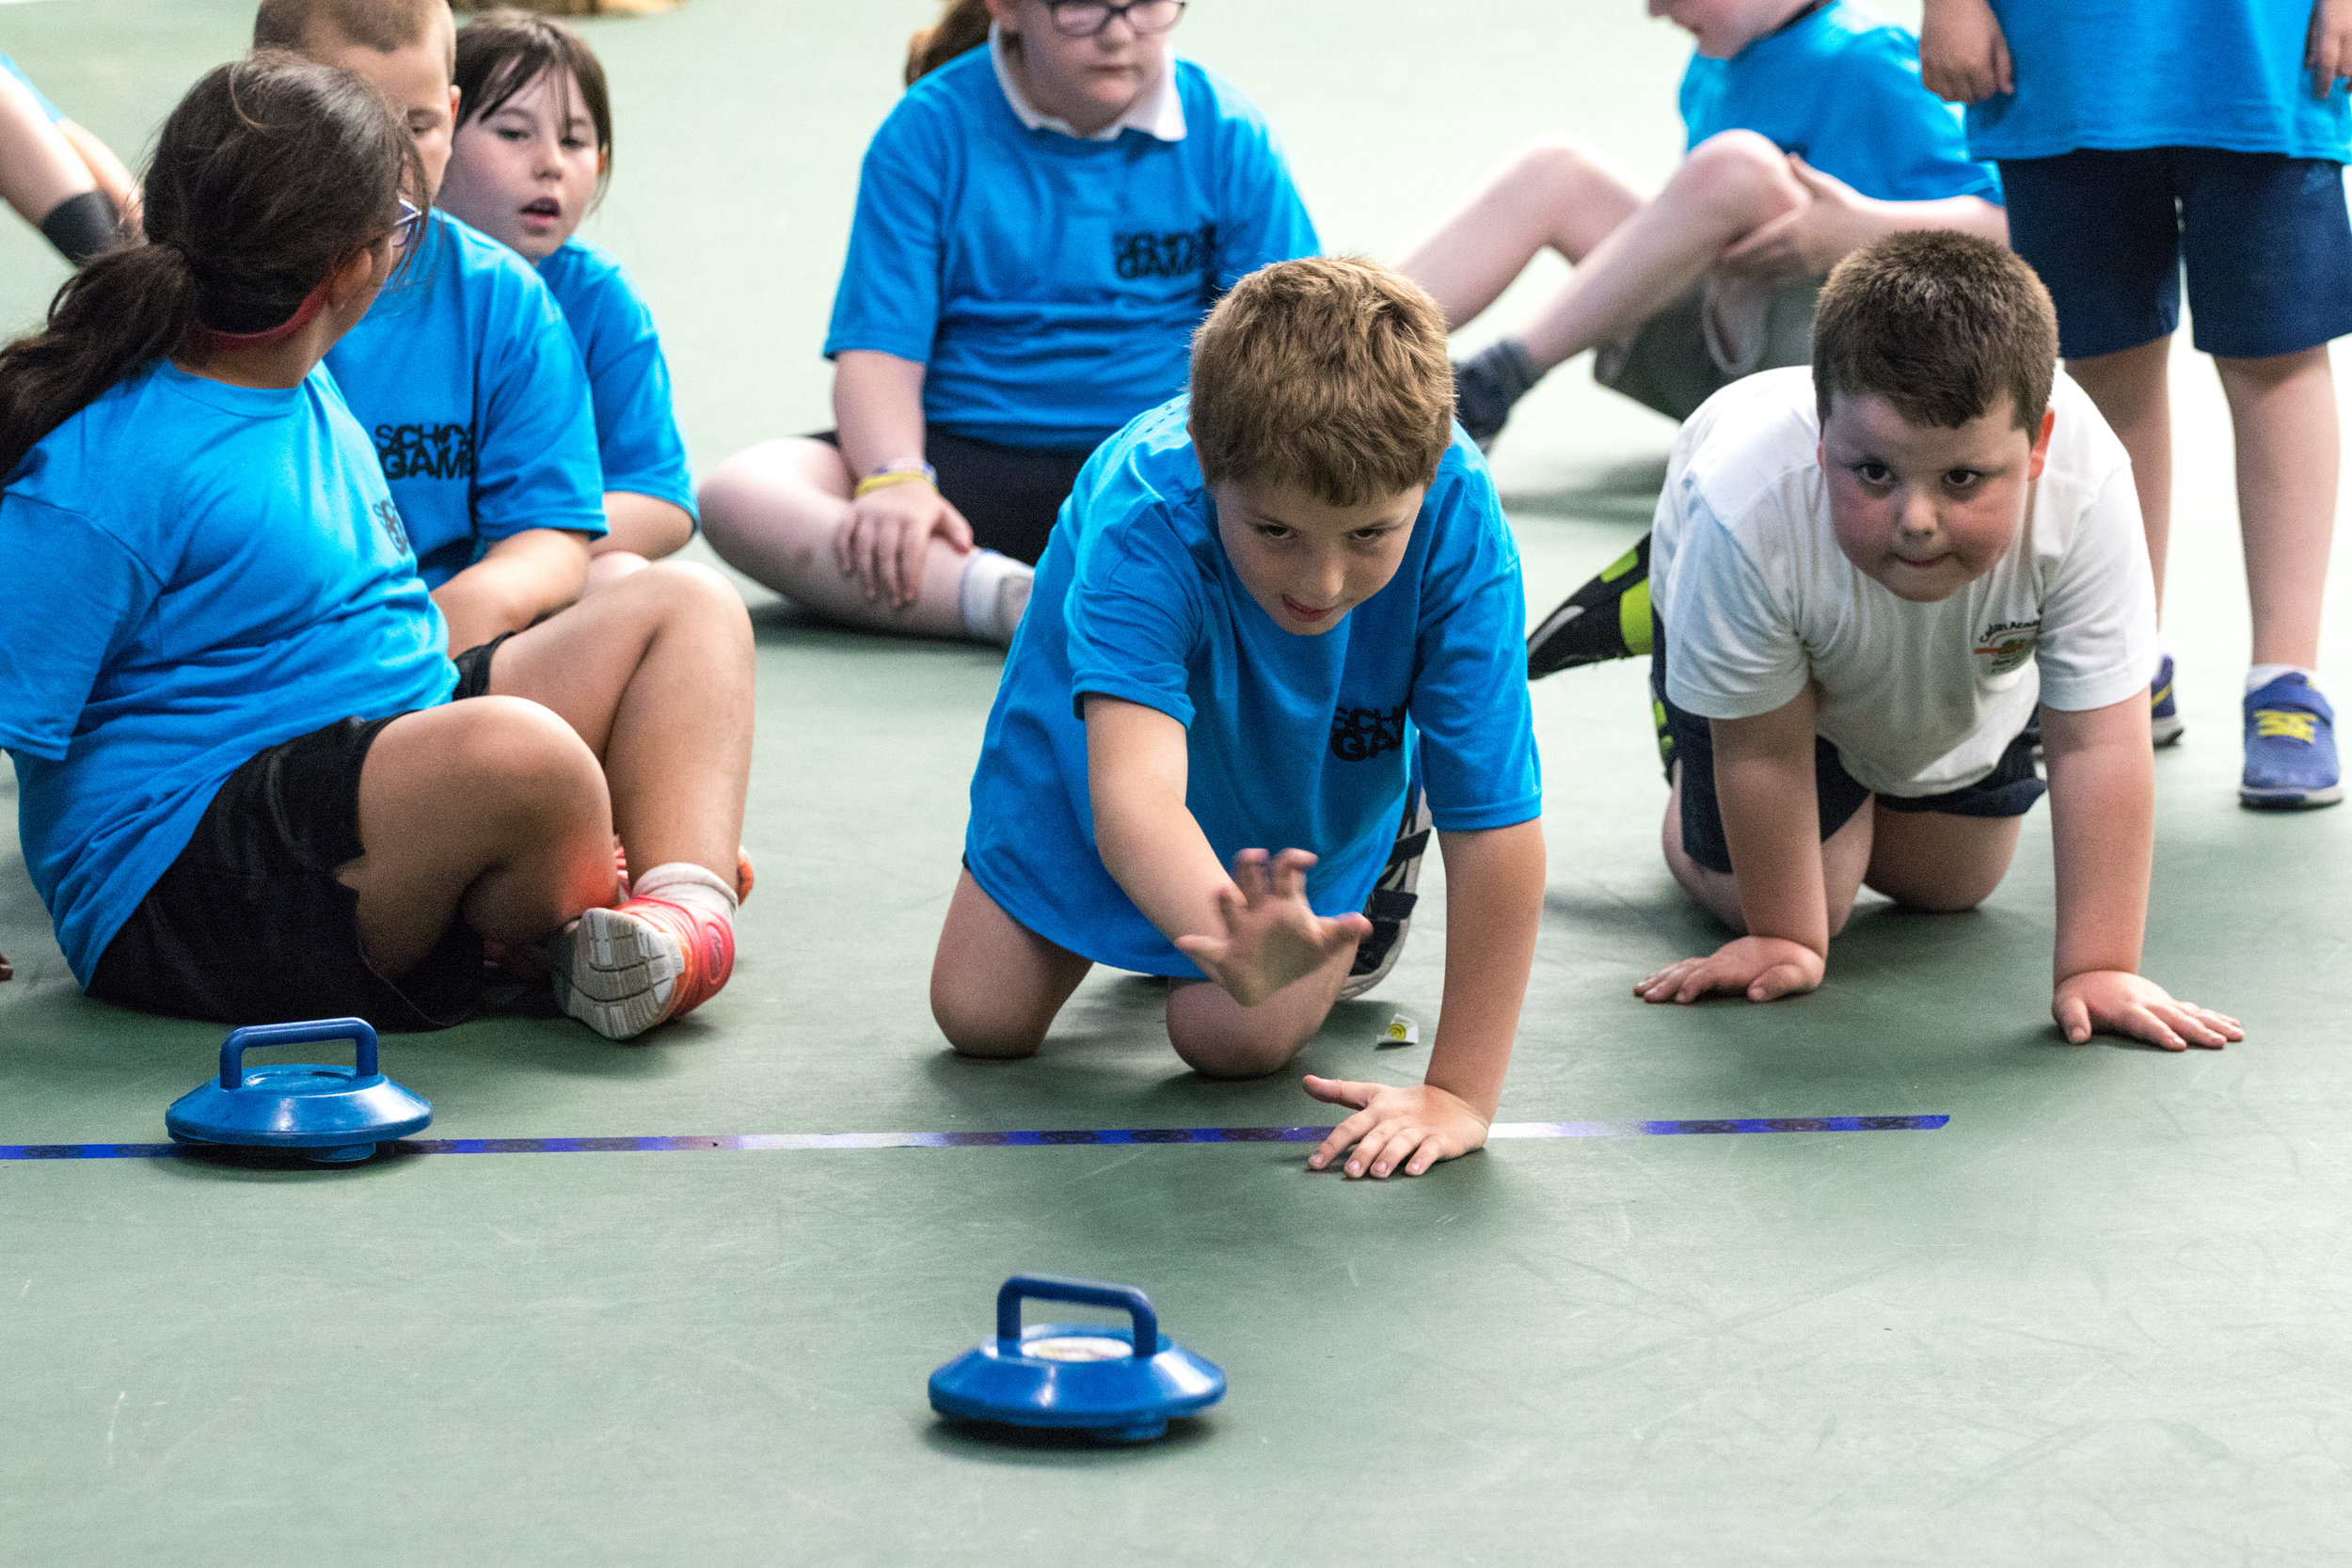 7622-300-TWS School Games June 2018.jpg